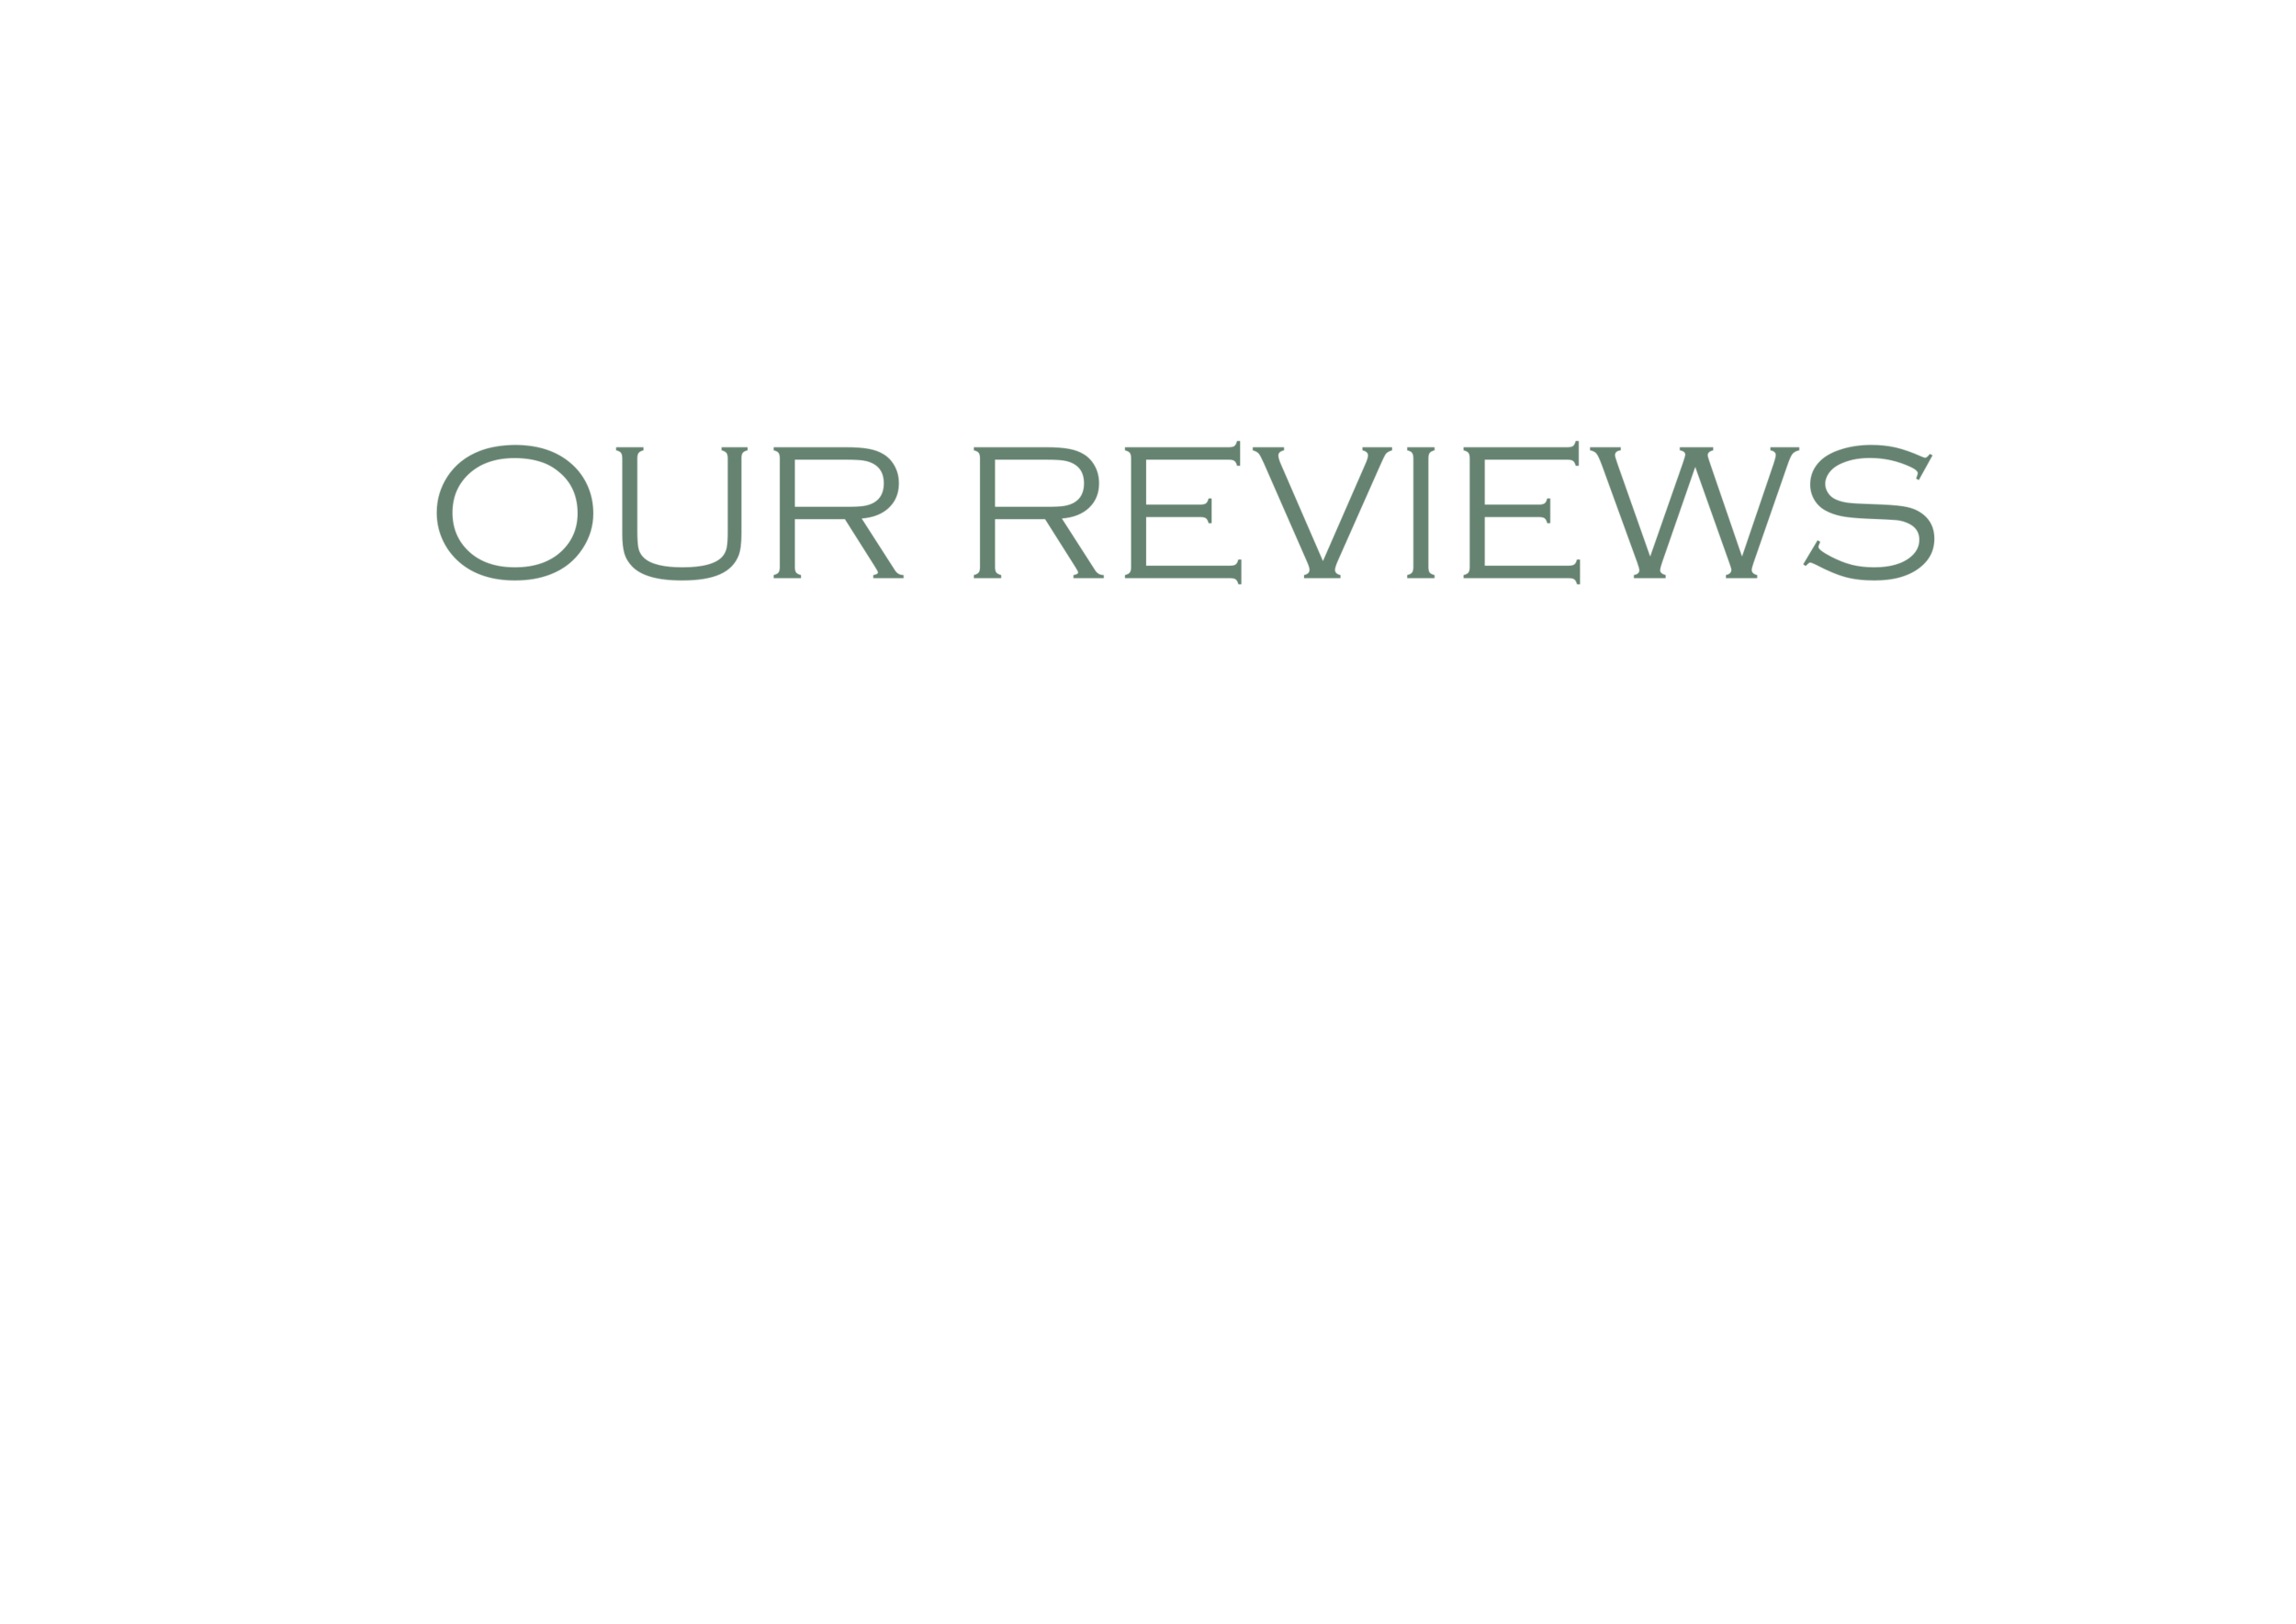 ourreview.png